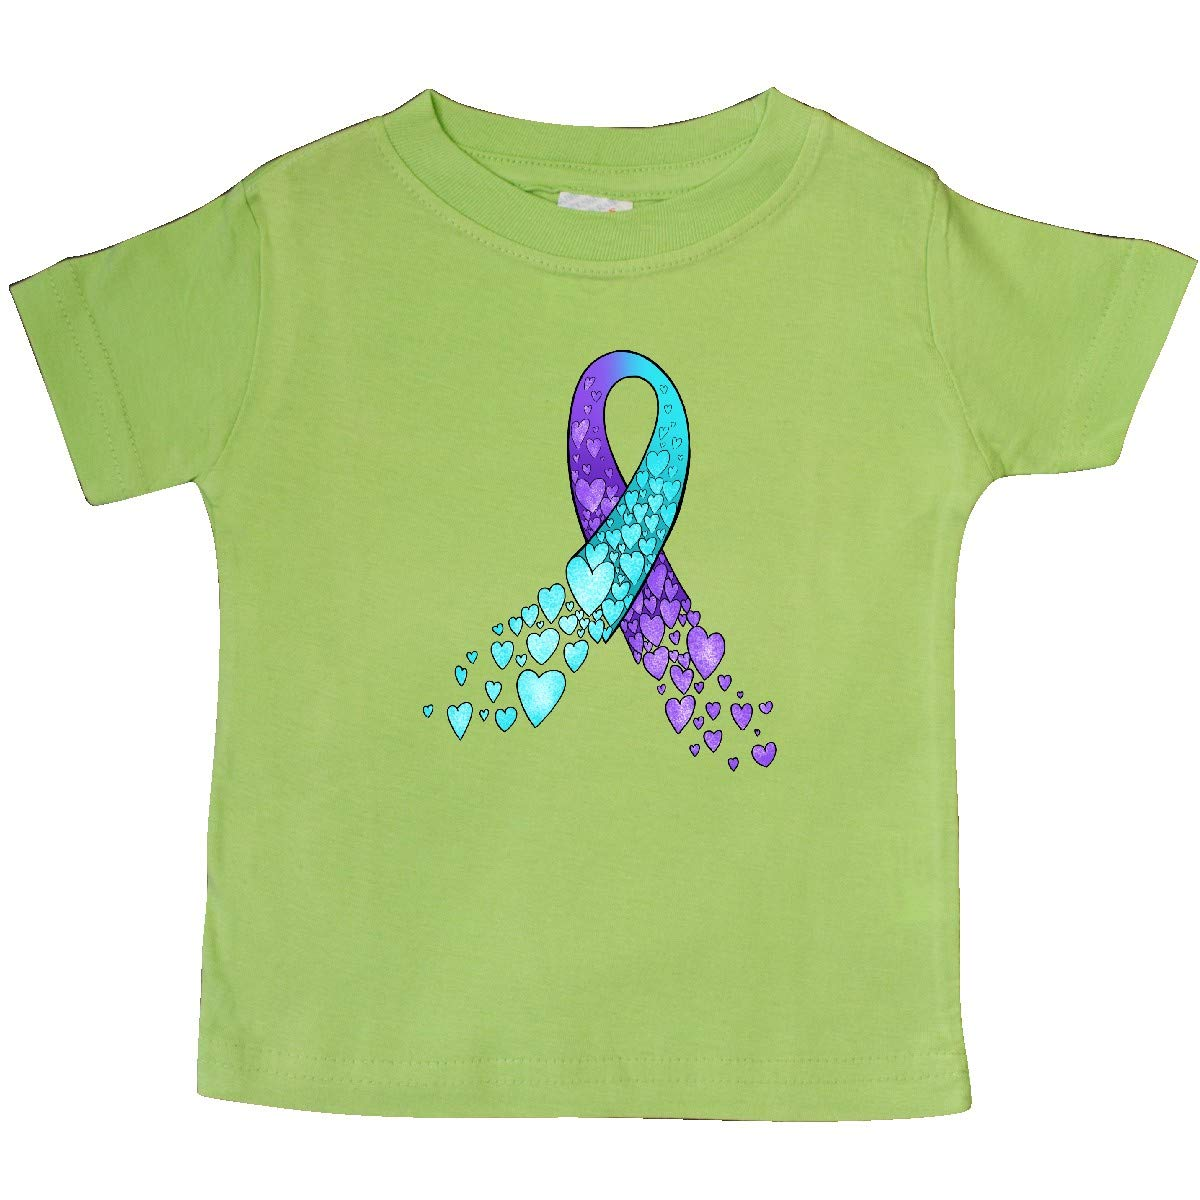 inktastic Suicide Prevention Ribbon with Blue and Purple Hearts Baby T-Shirt